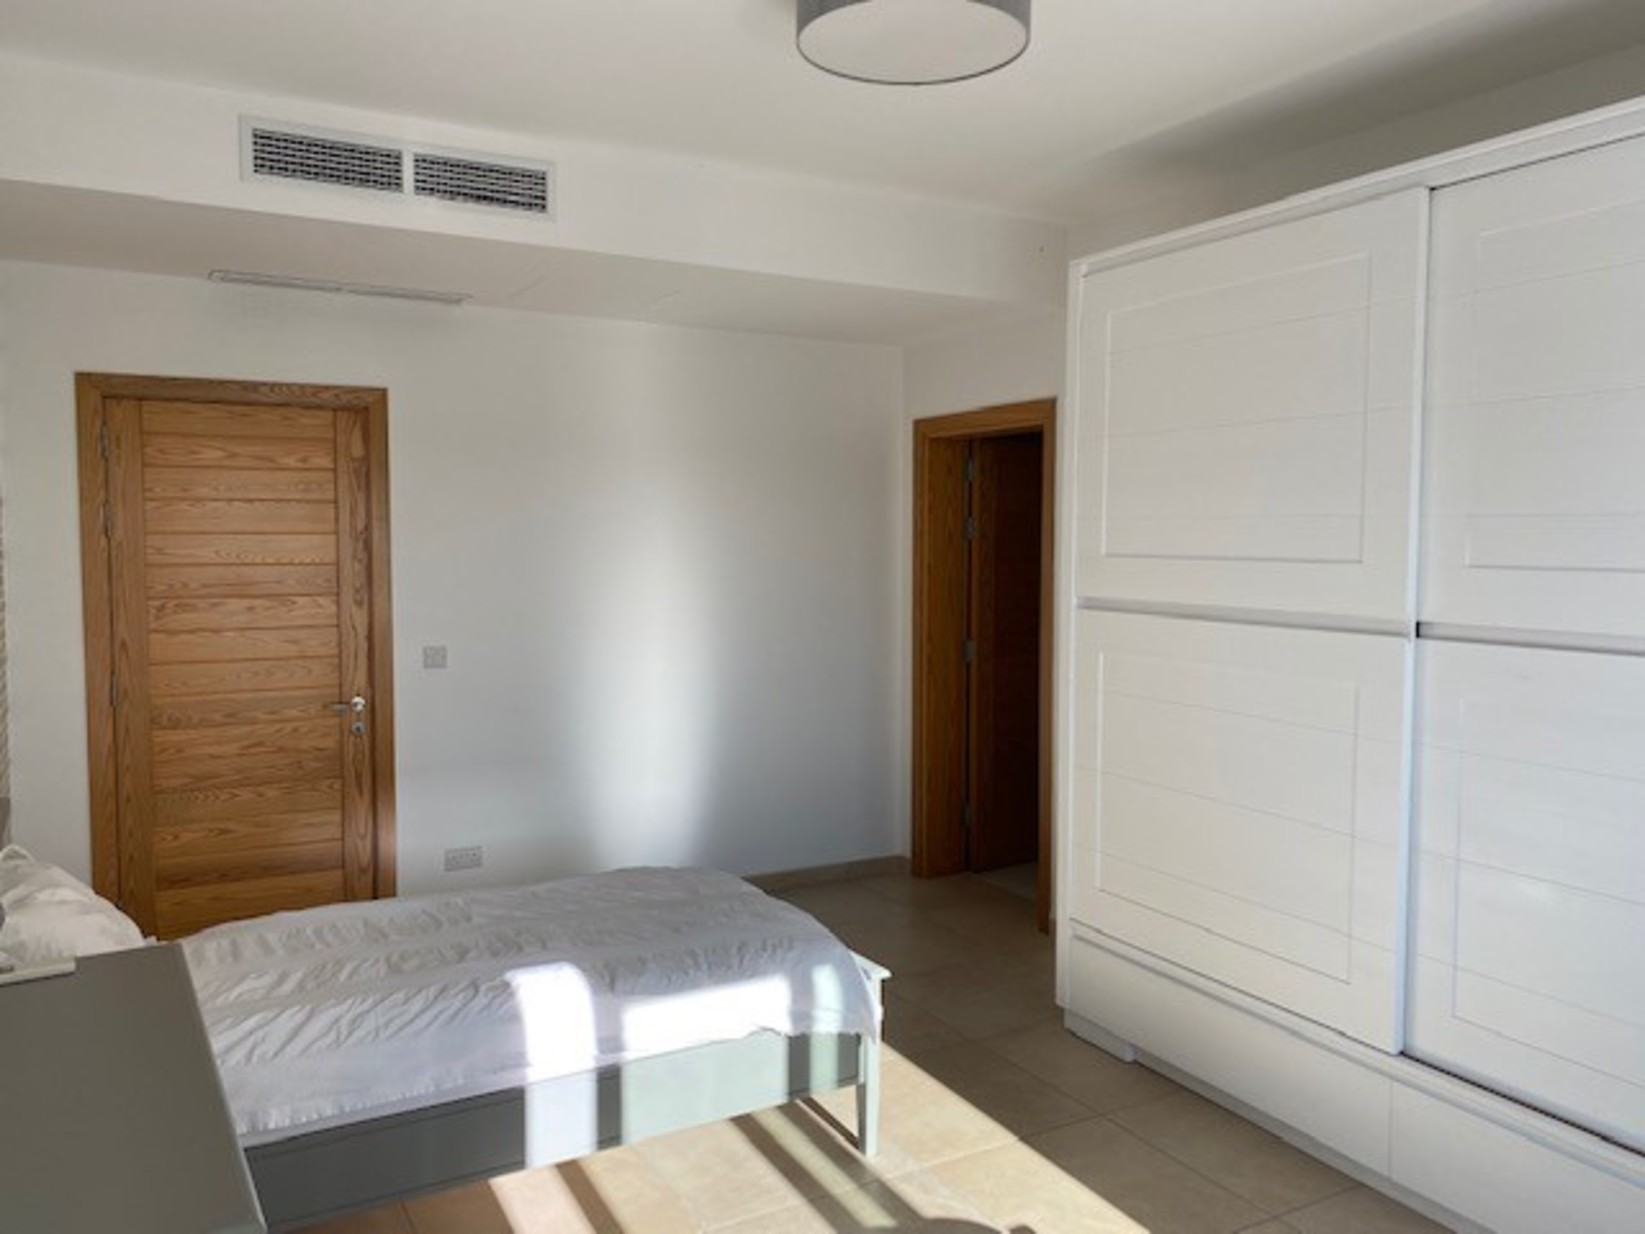 2 bed Apartment For Sale in Sliema,  - thumb 9